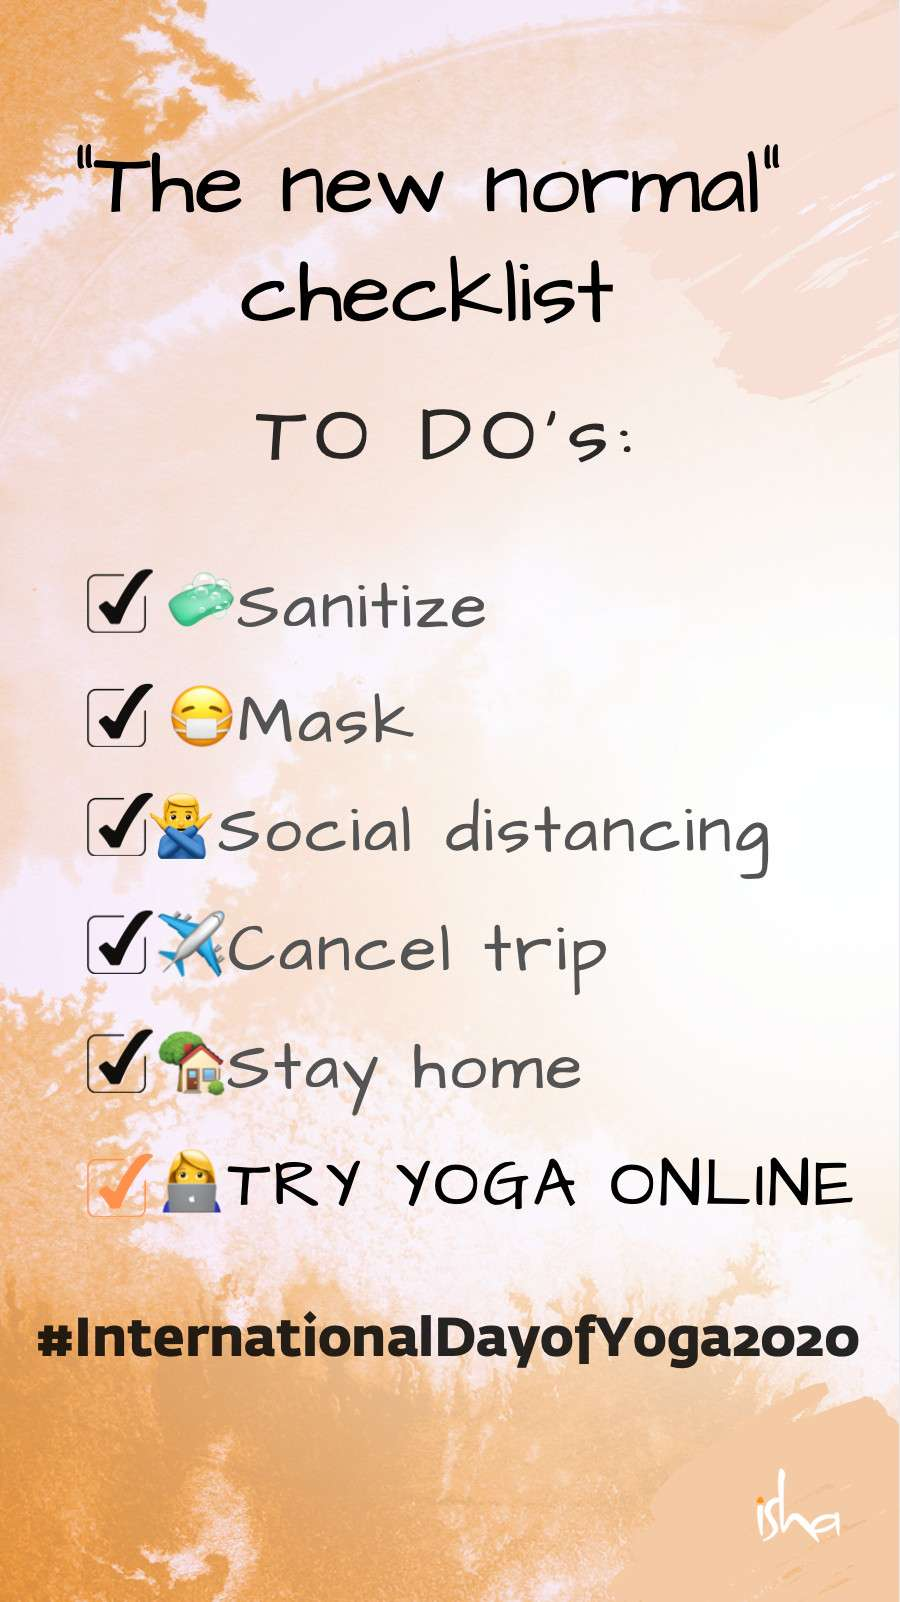 isha-blog-article-yoga-the-new-normal-checklist